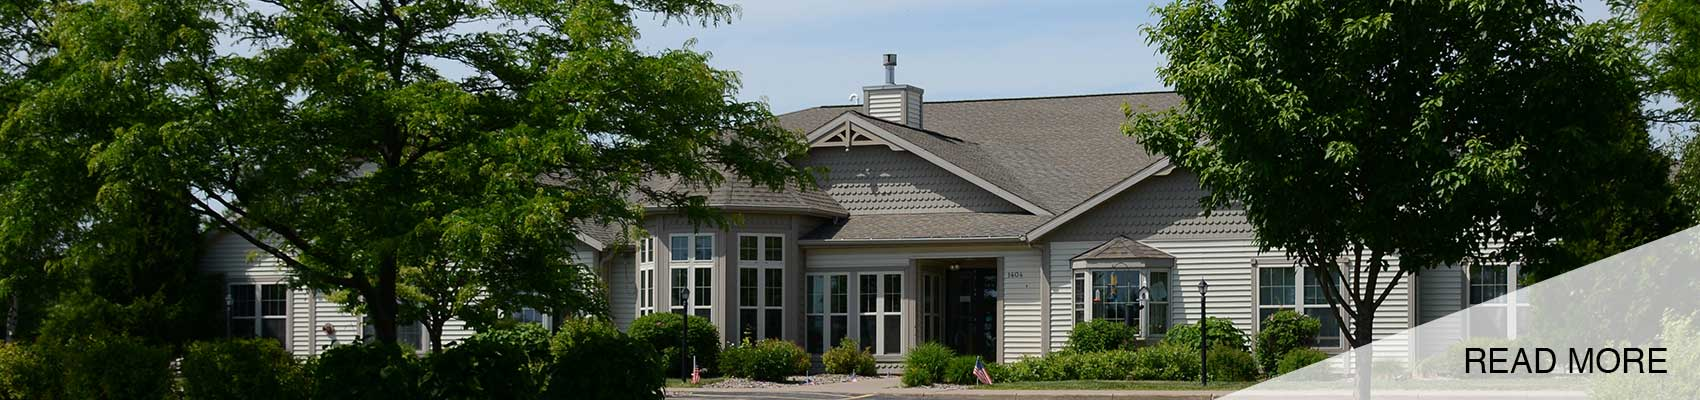 Copperleaf Senior Living   in Wausau, WI